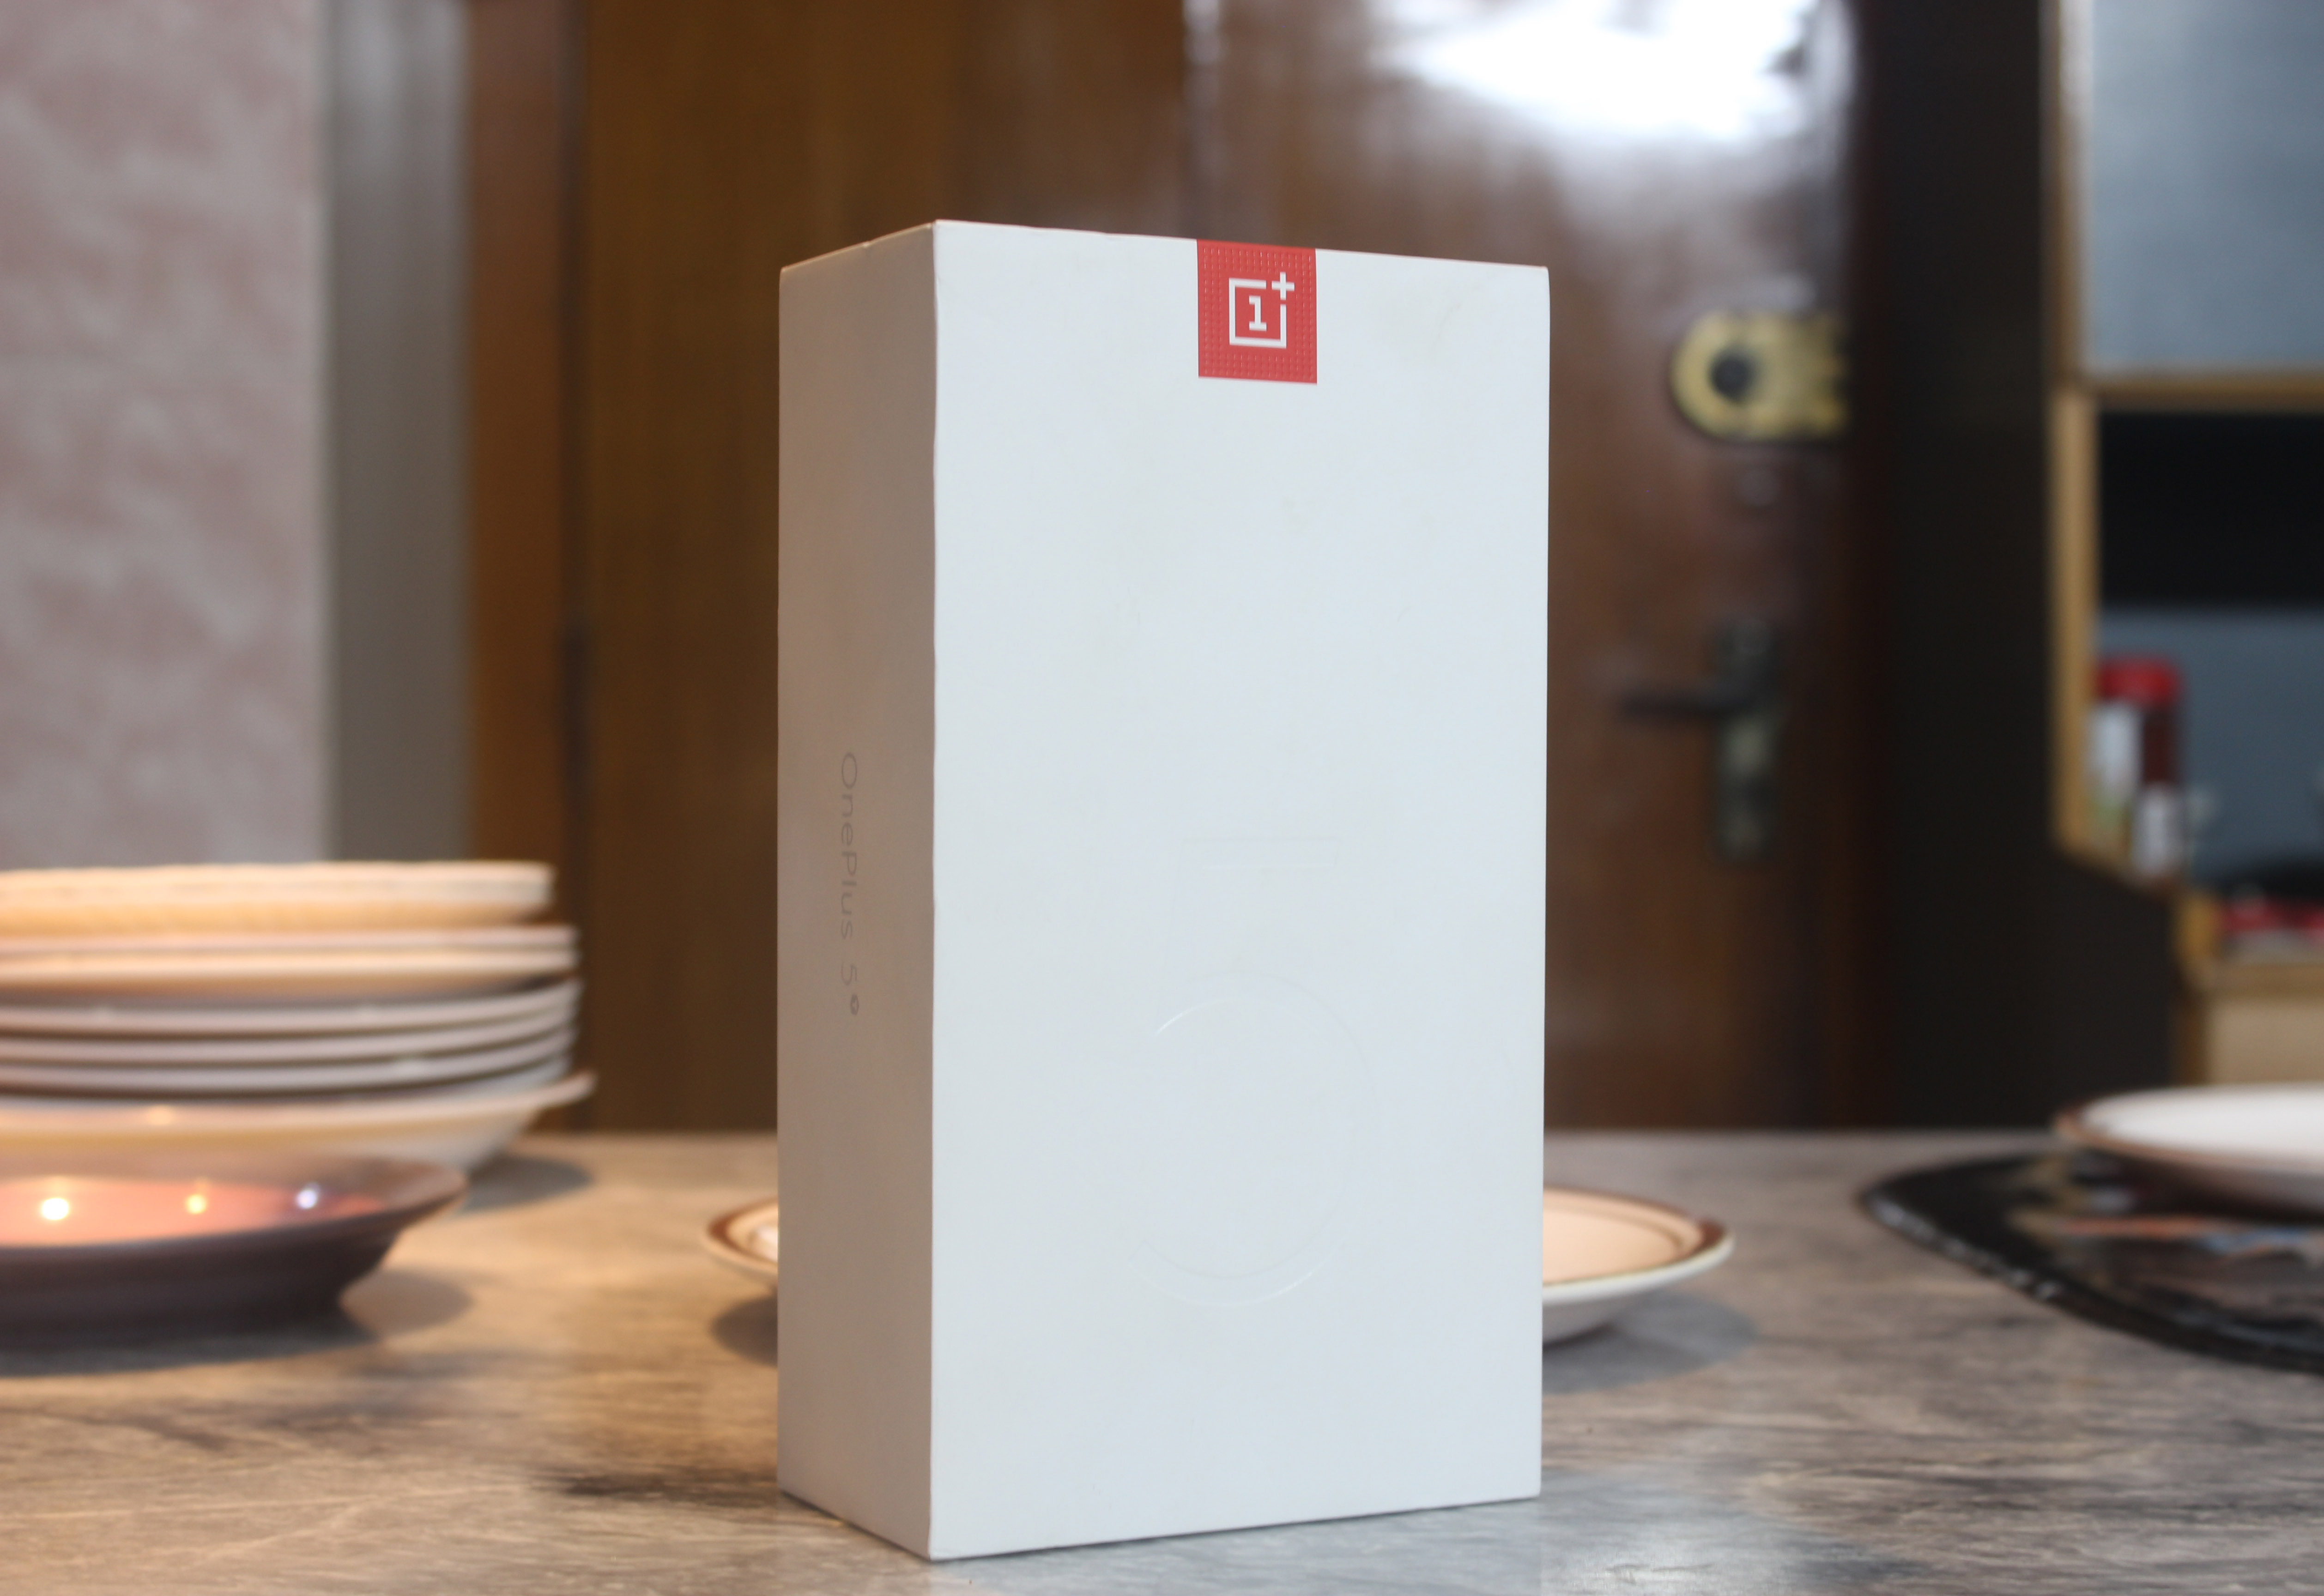 OnePlus 5T Review: A Very Strong Contender Even in 2018